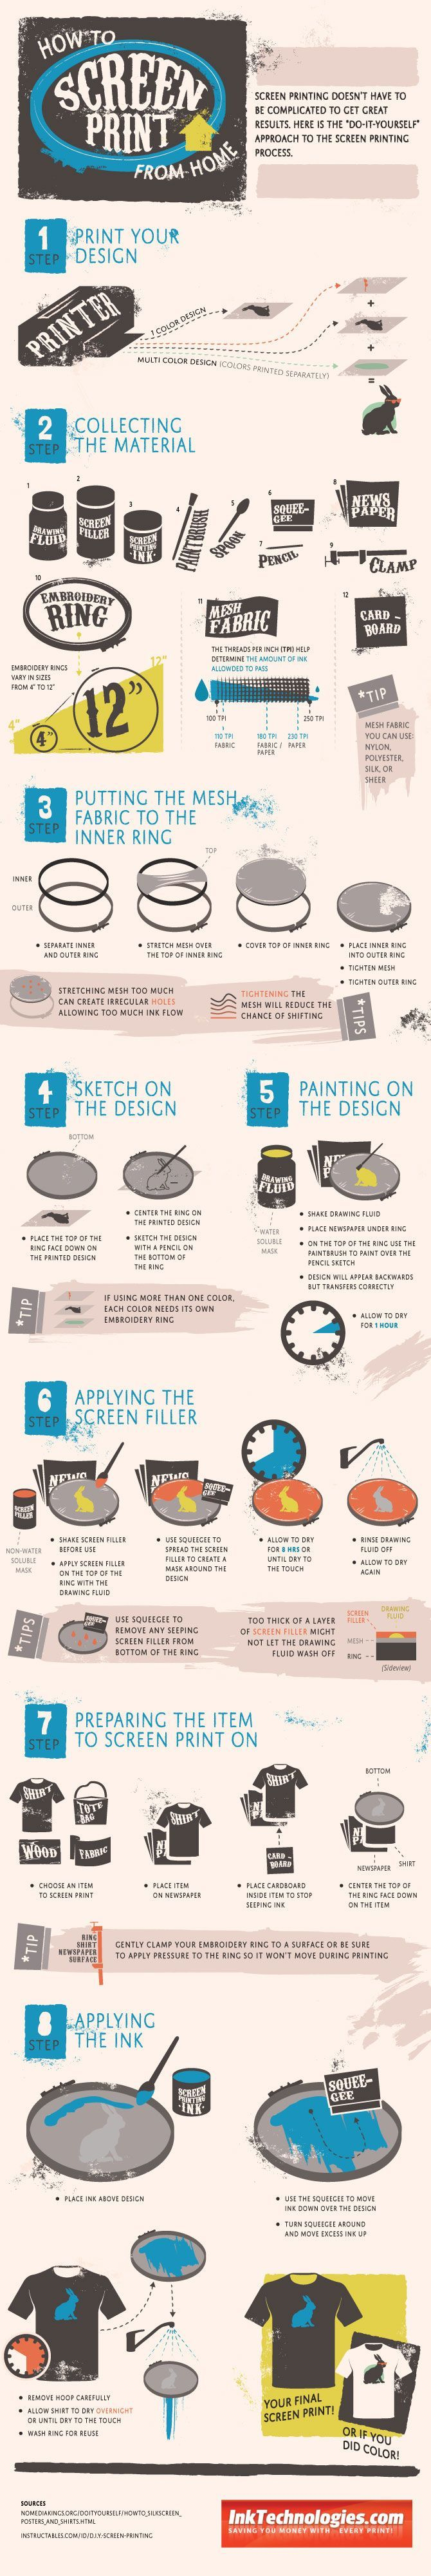 A good info-graphic for DIY screen printing using an embroidery hoop from Lifehack #screenprinting #Ryonet